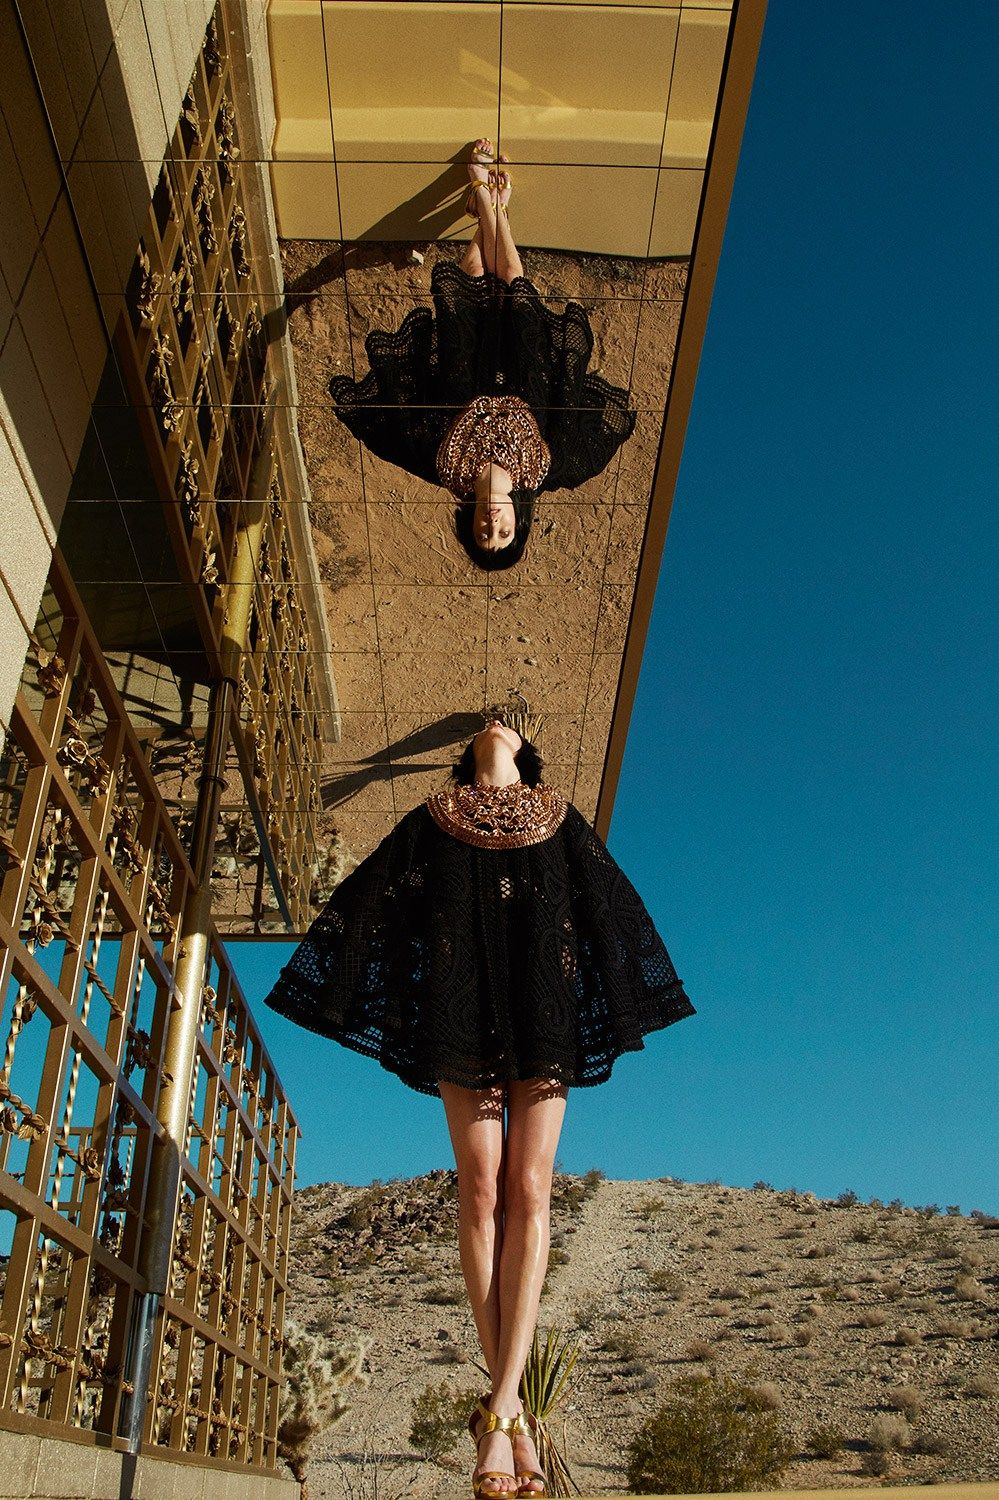 Vogue Taiwan metallic desert mirror fashion editorial with model Diana Moldovan | NEW YORK FASHION BEAUTY PHOTOGRAPHER- EDITORIAL COMMERCIAL ADVERTISING PHOTOGRAPHY